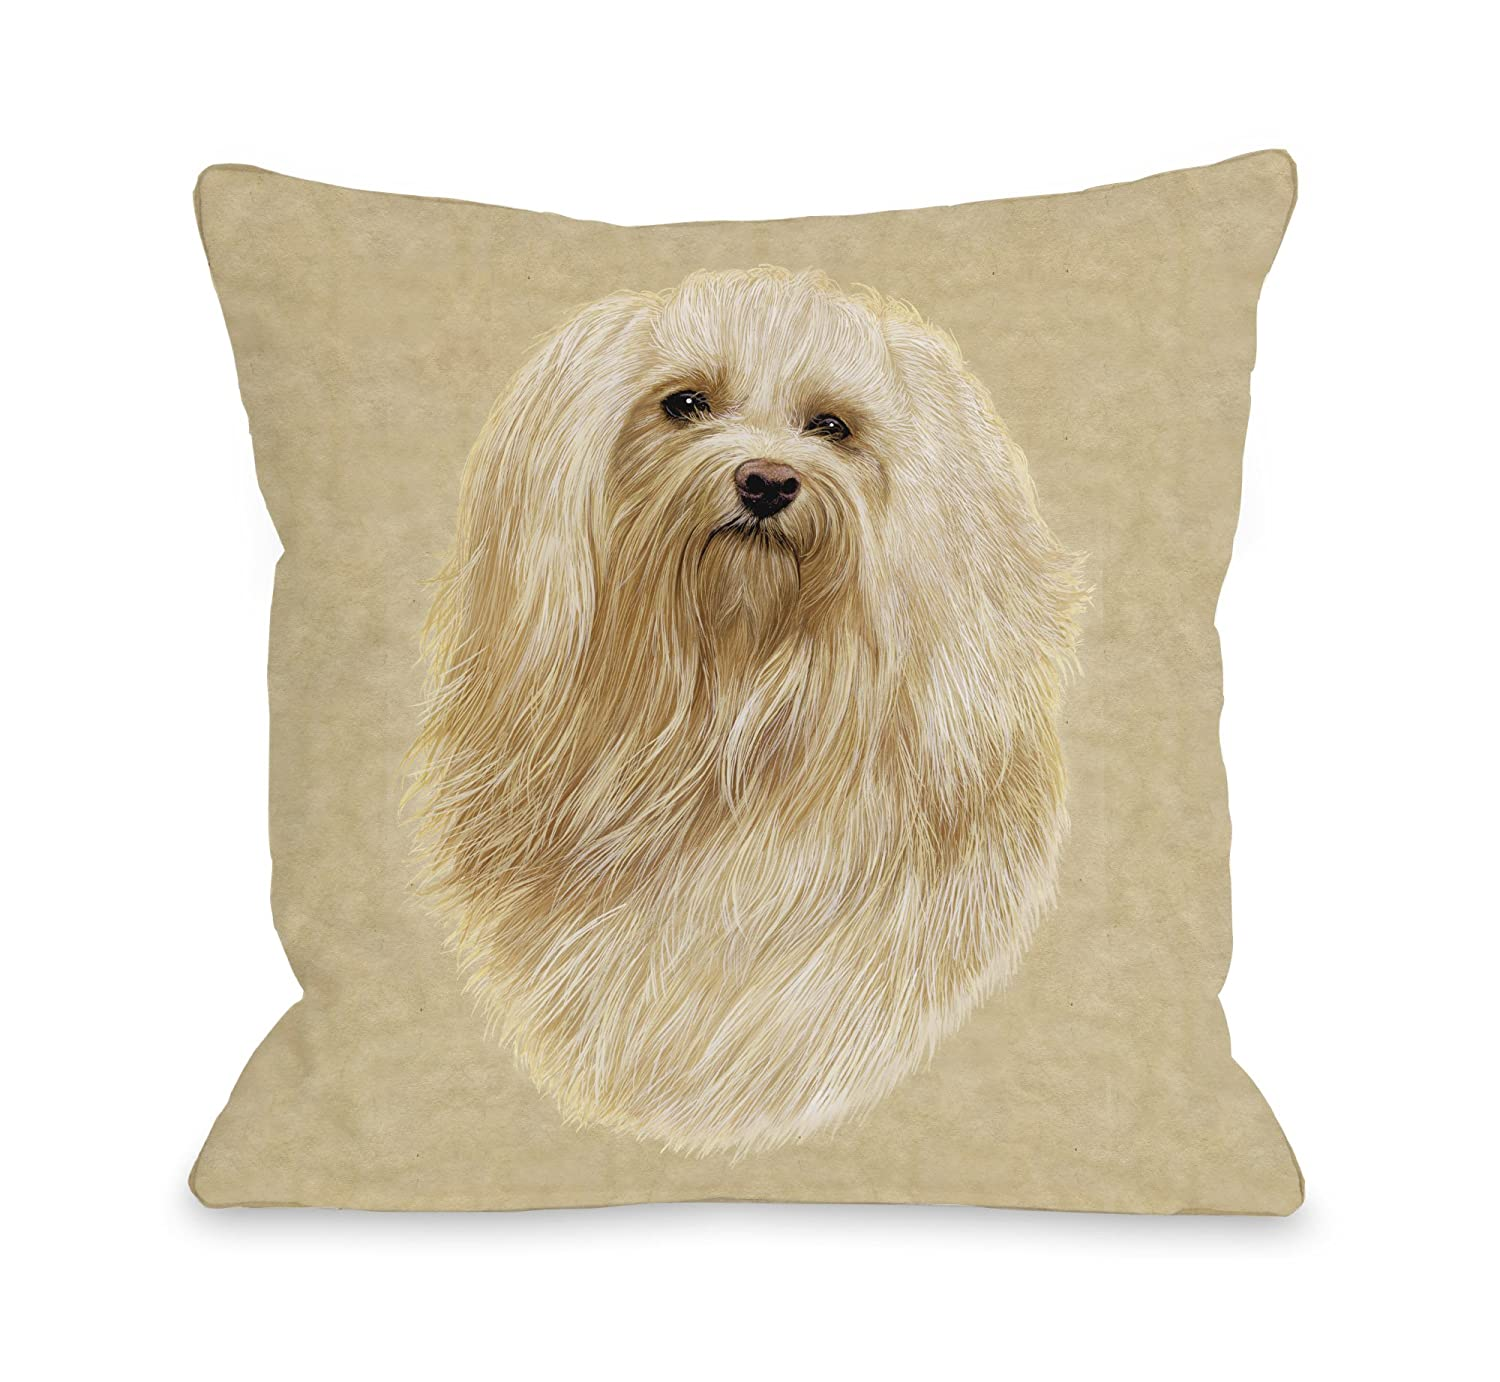 One Bella Casa Havanese Pillow 18 by 18-inch